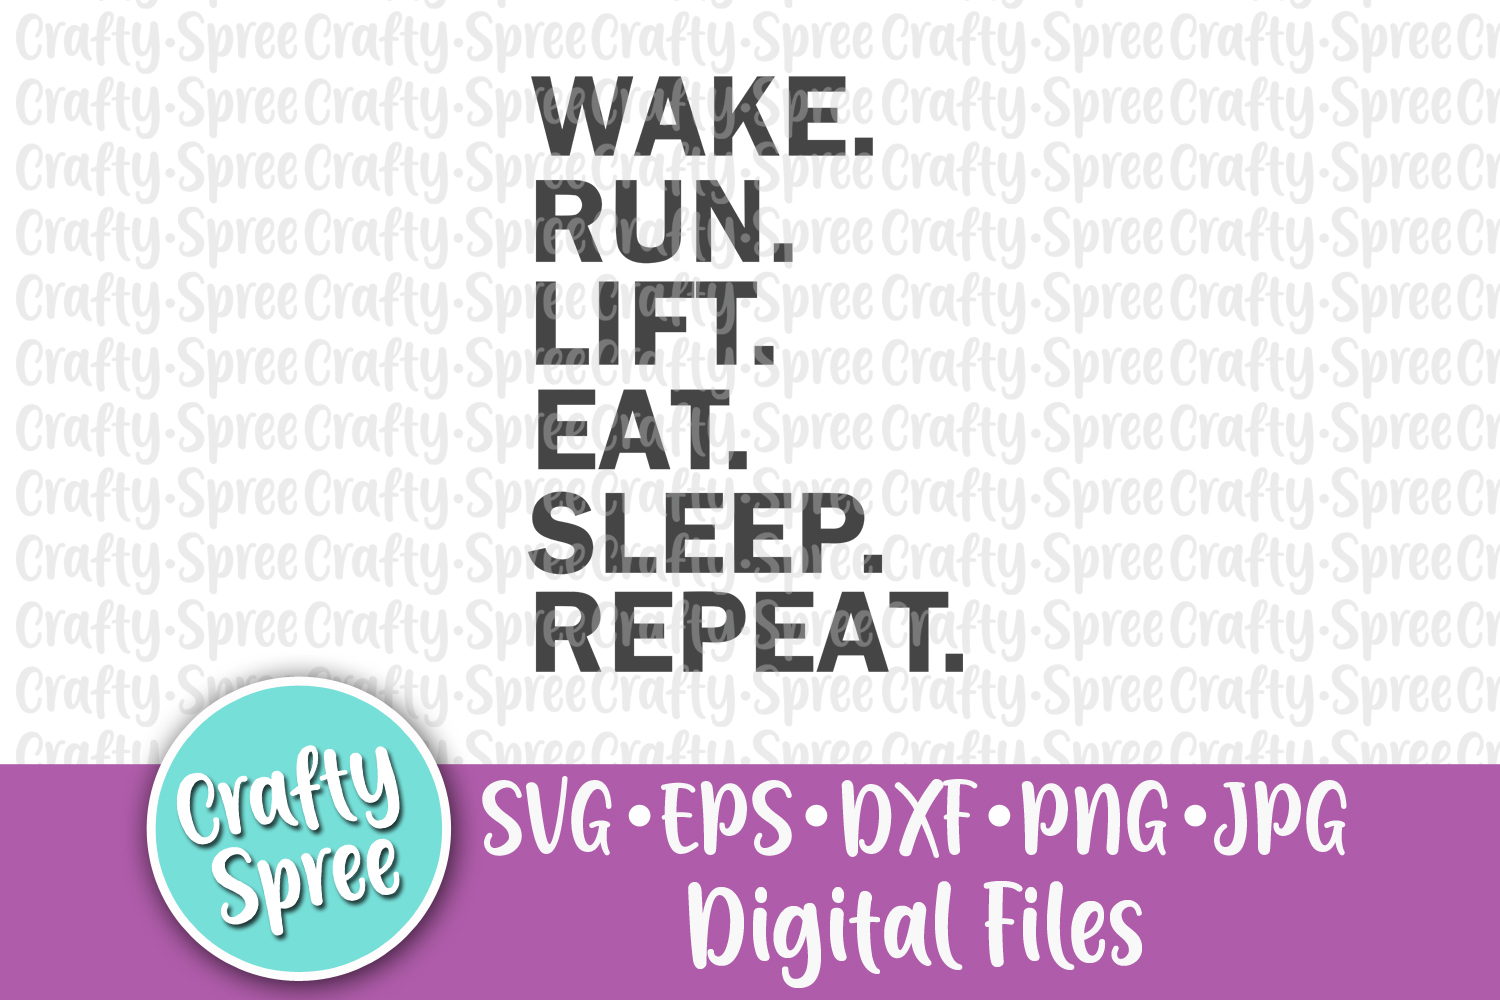 Wake Run Life Eat Sleep Repeat SVG PNG DXF Cut File example image 1